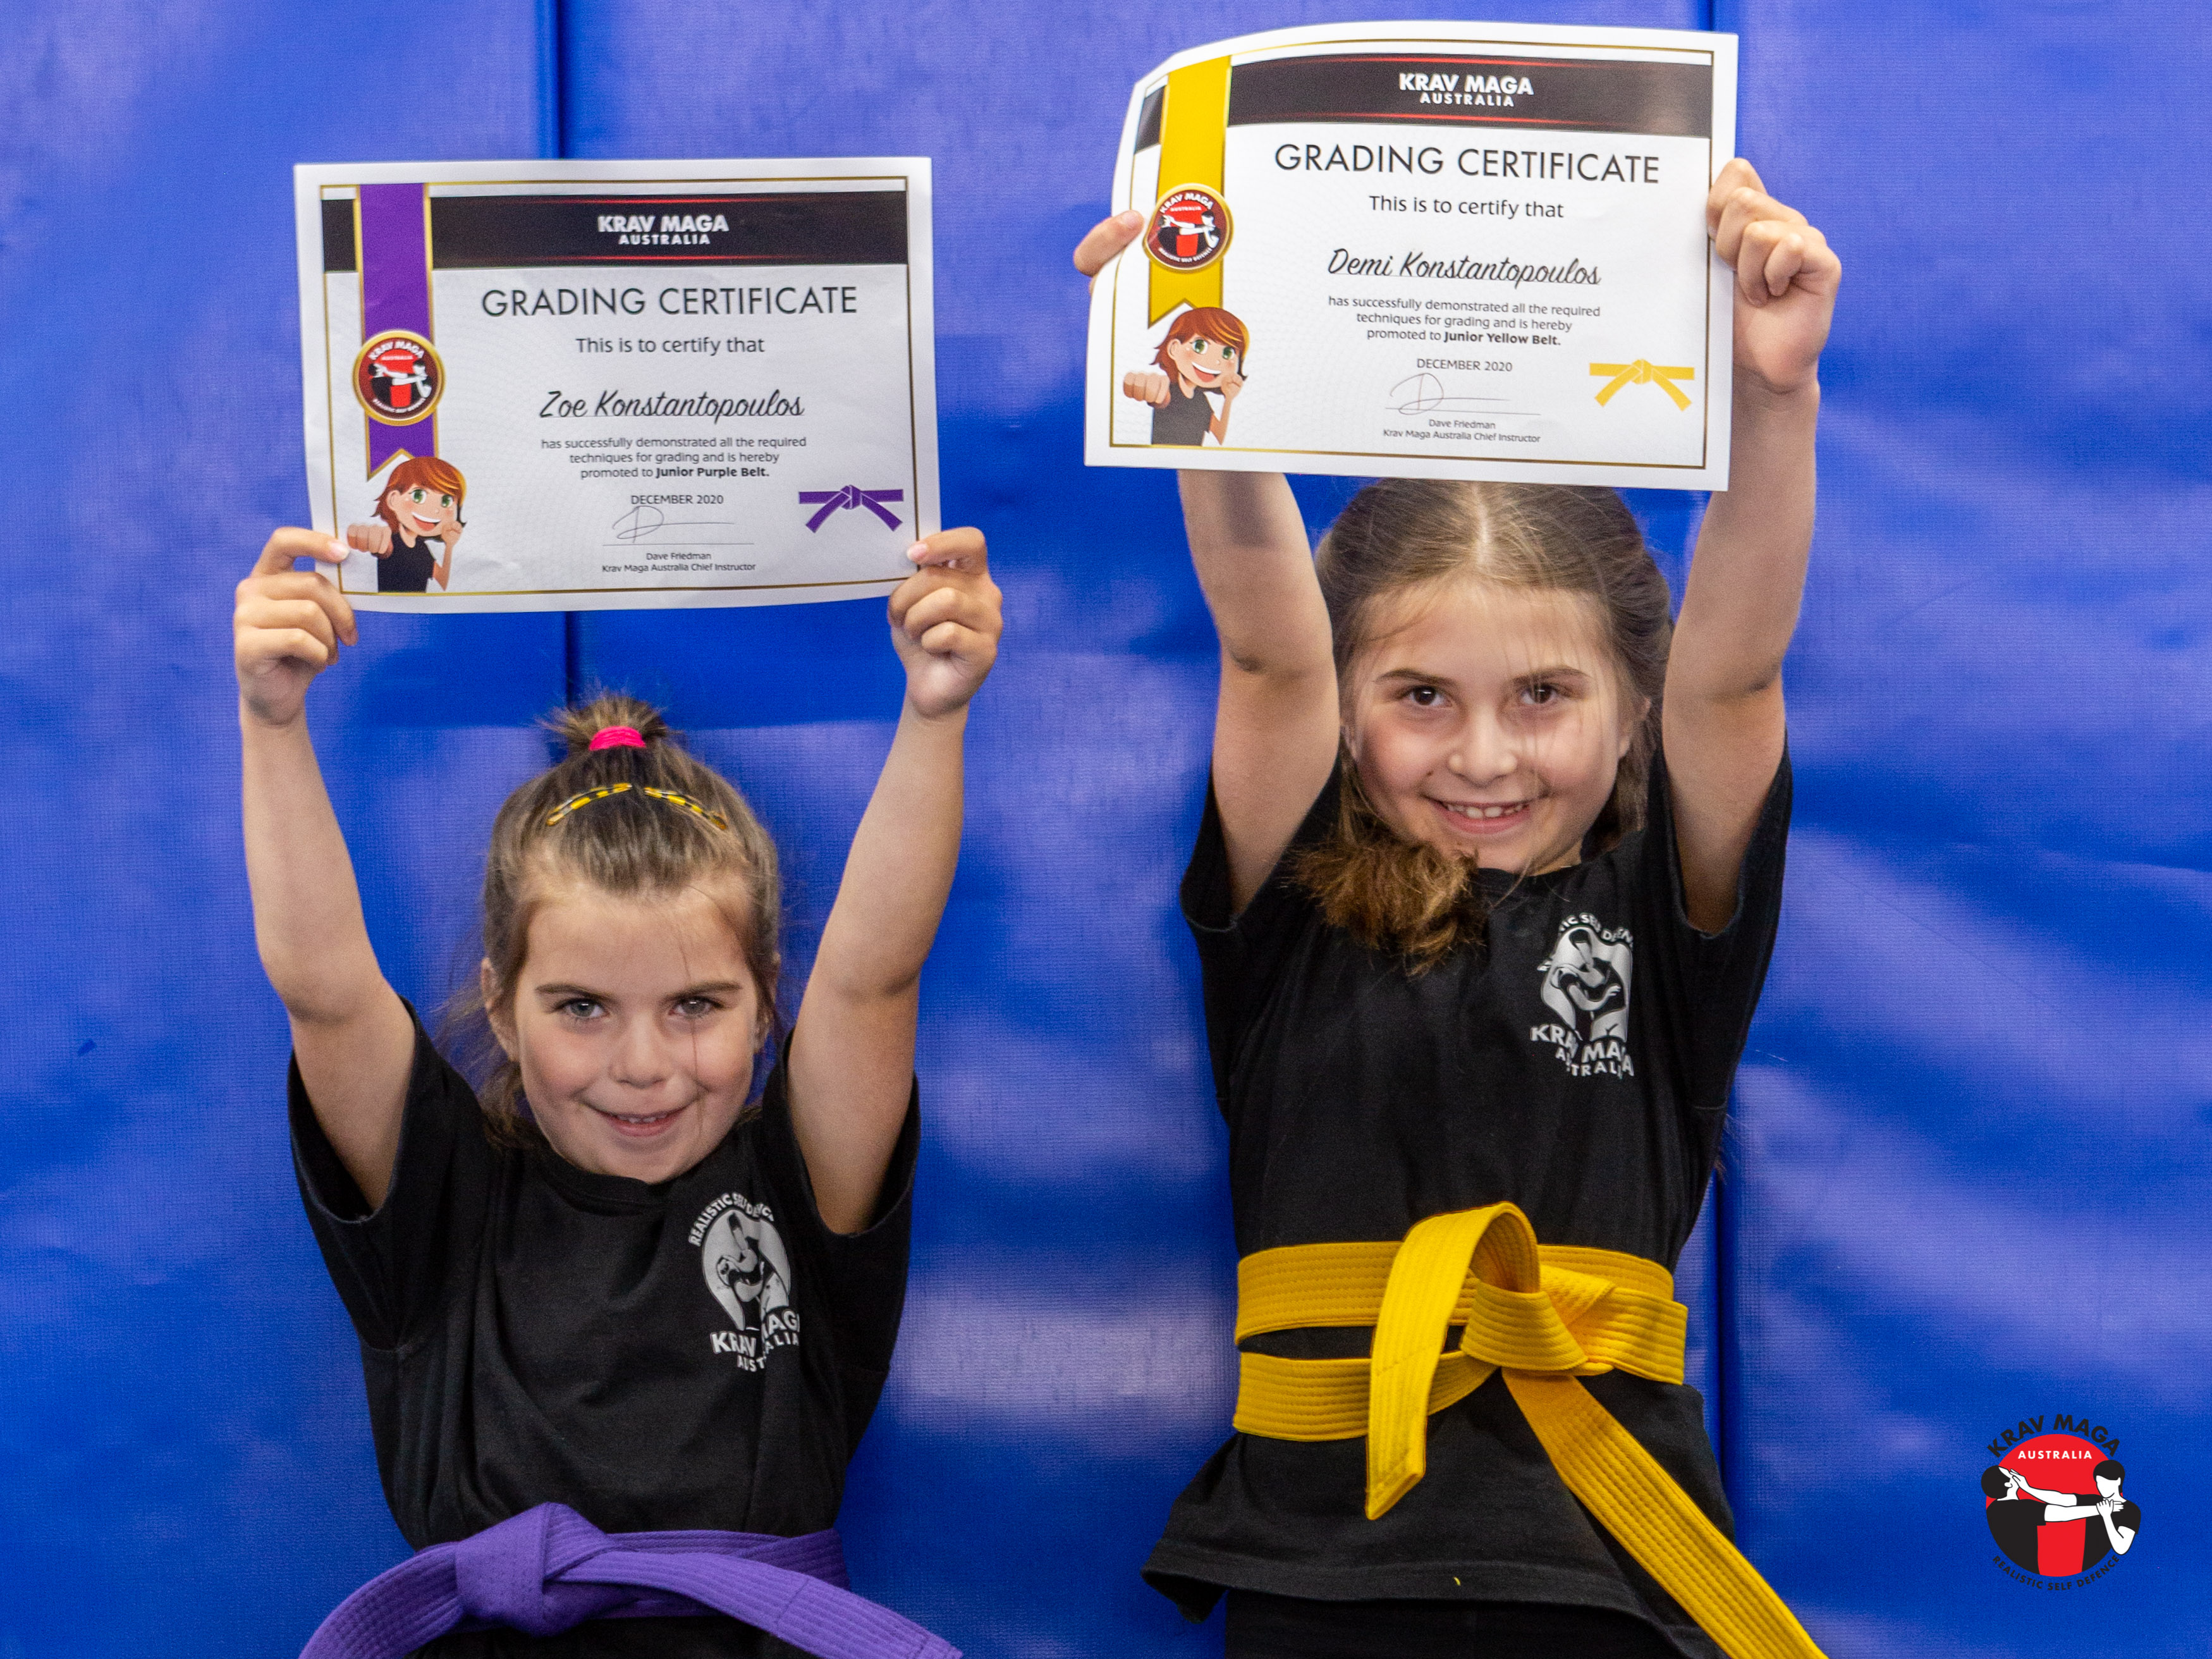 Two krav maga students holding up their grading certificate after class